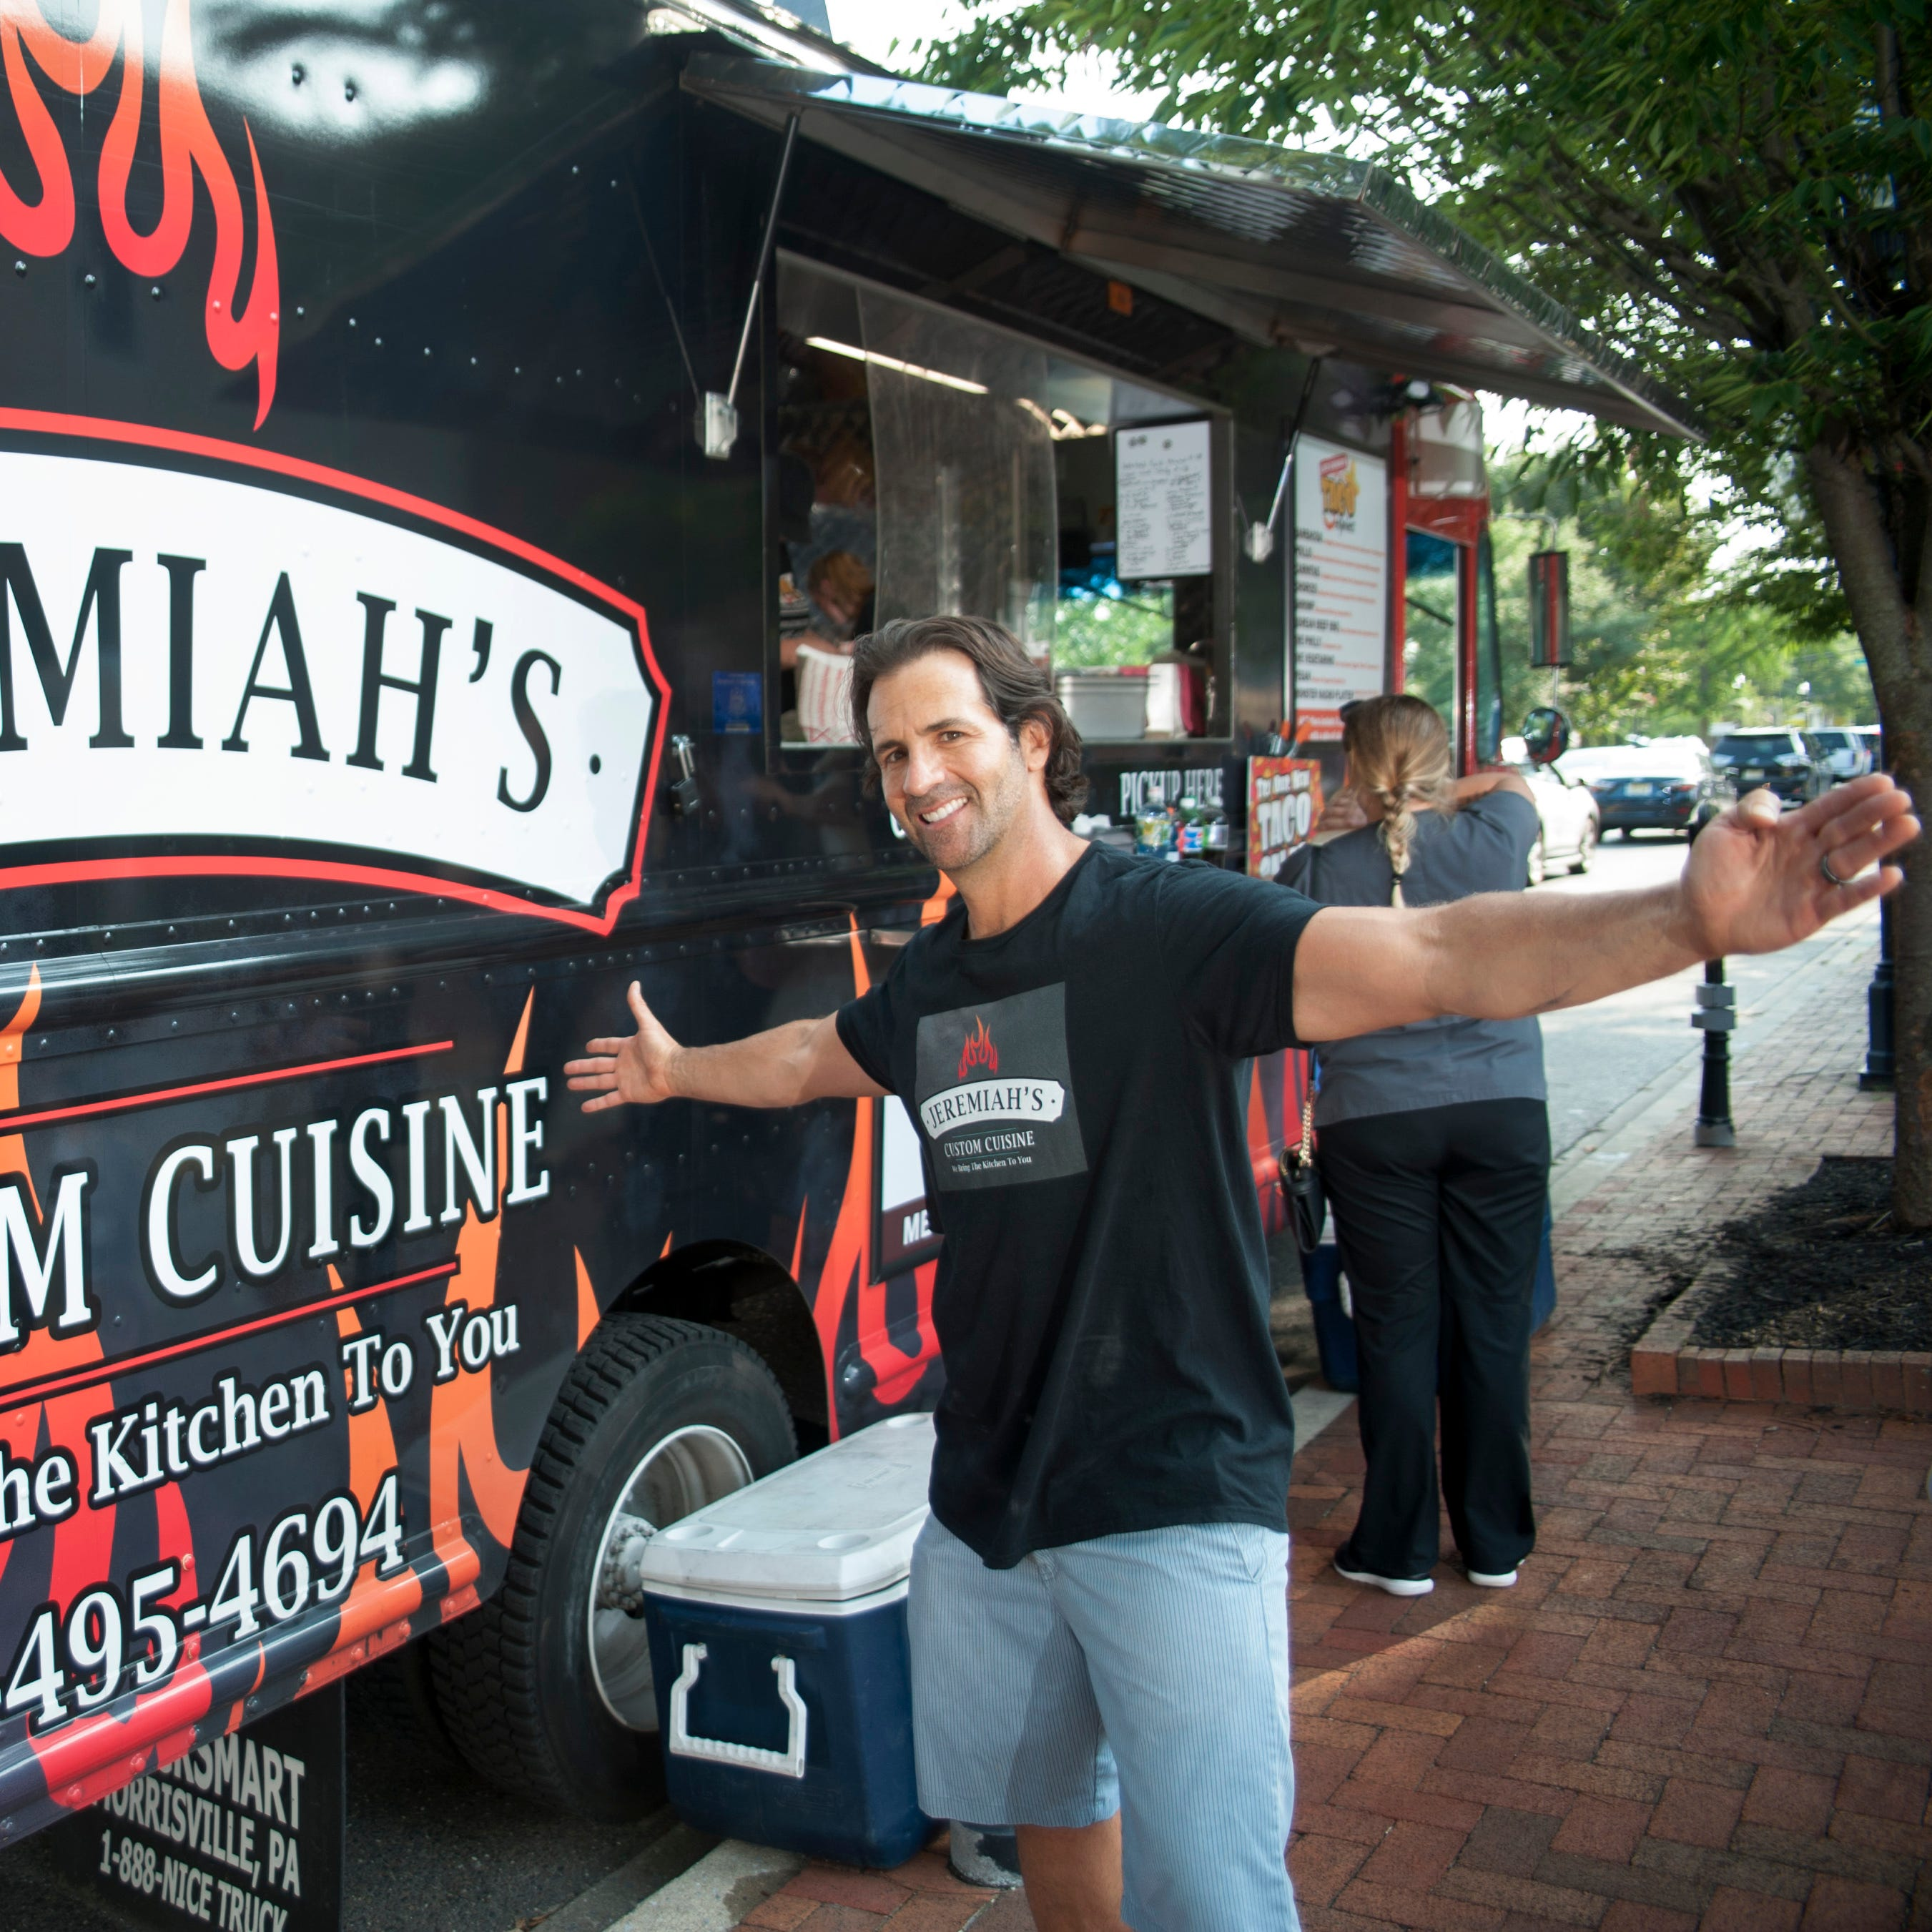 It's four food trucks in one for this popular South Jersey business